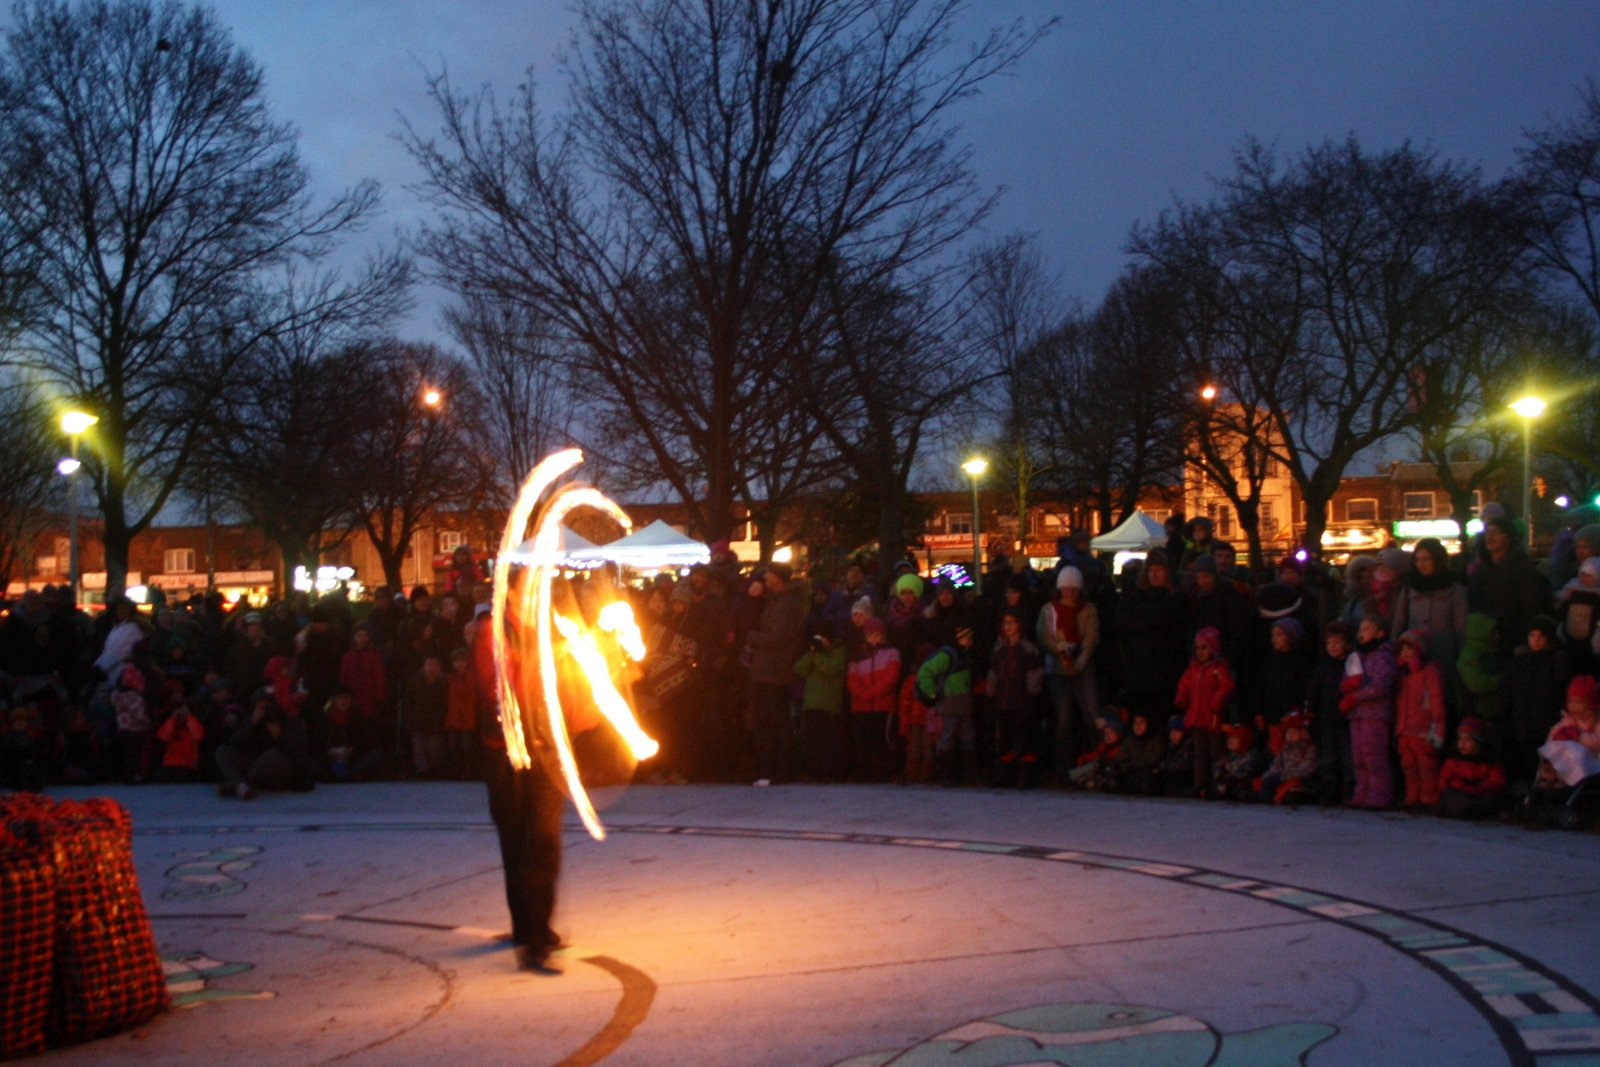 Zero Gravity Circus Fire Artist wowing the crowds.